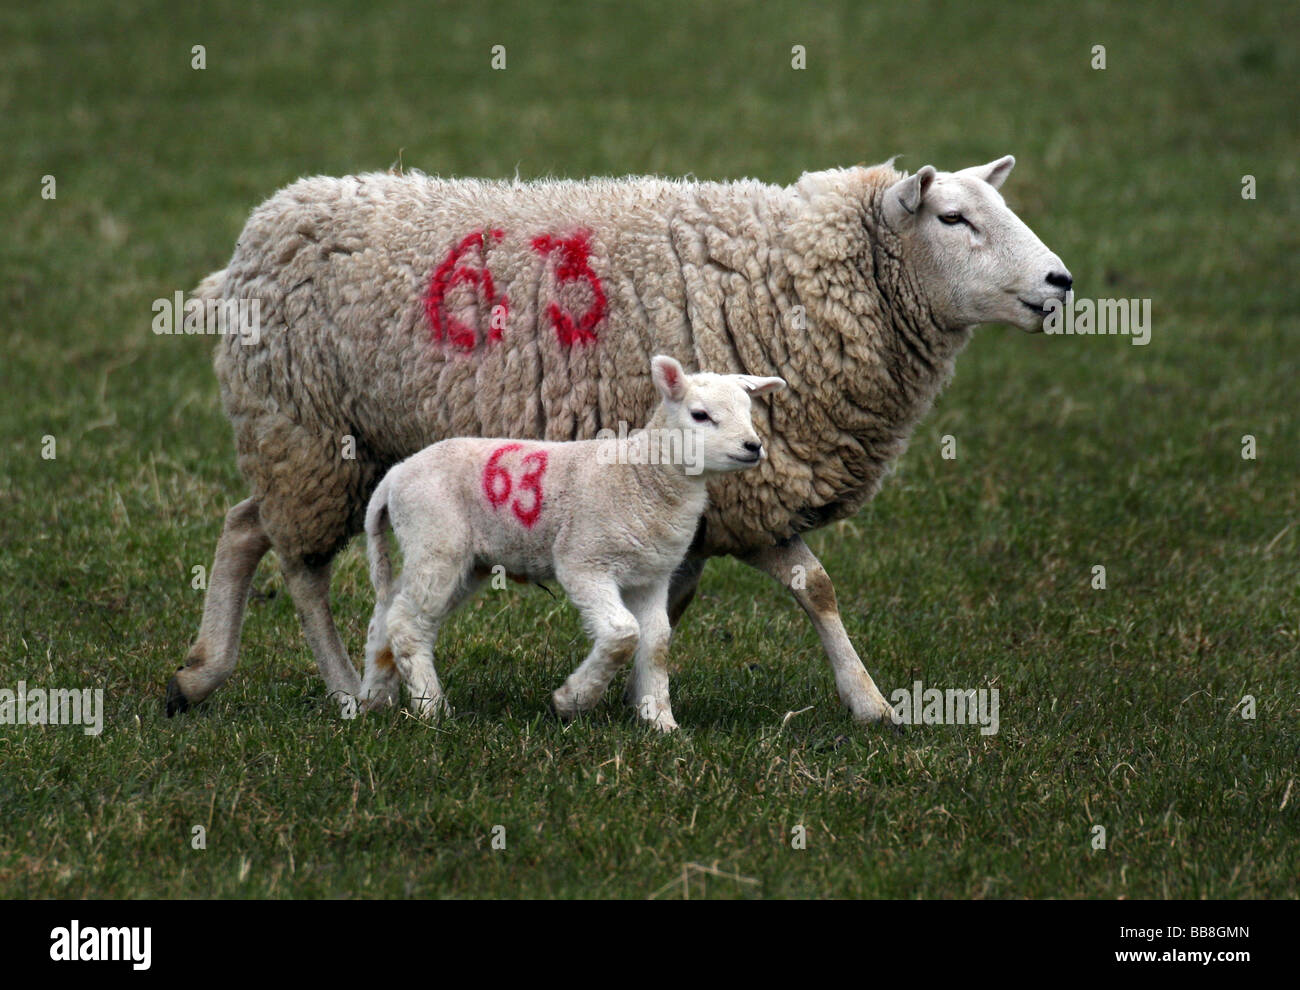 Newborn lamb and Ewe in a field in Steeple Bumstead on the Essex Suffolk Borders - Stock Image